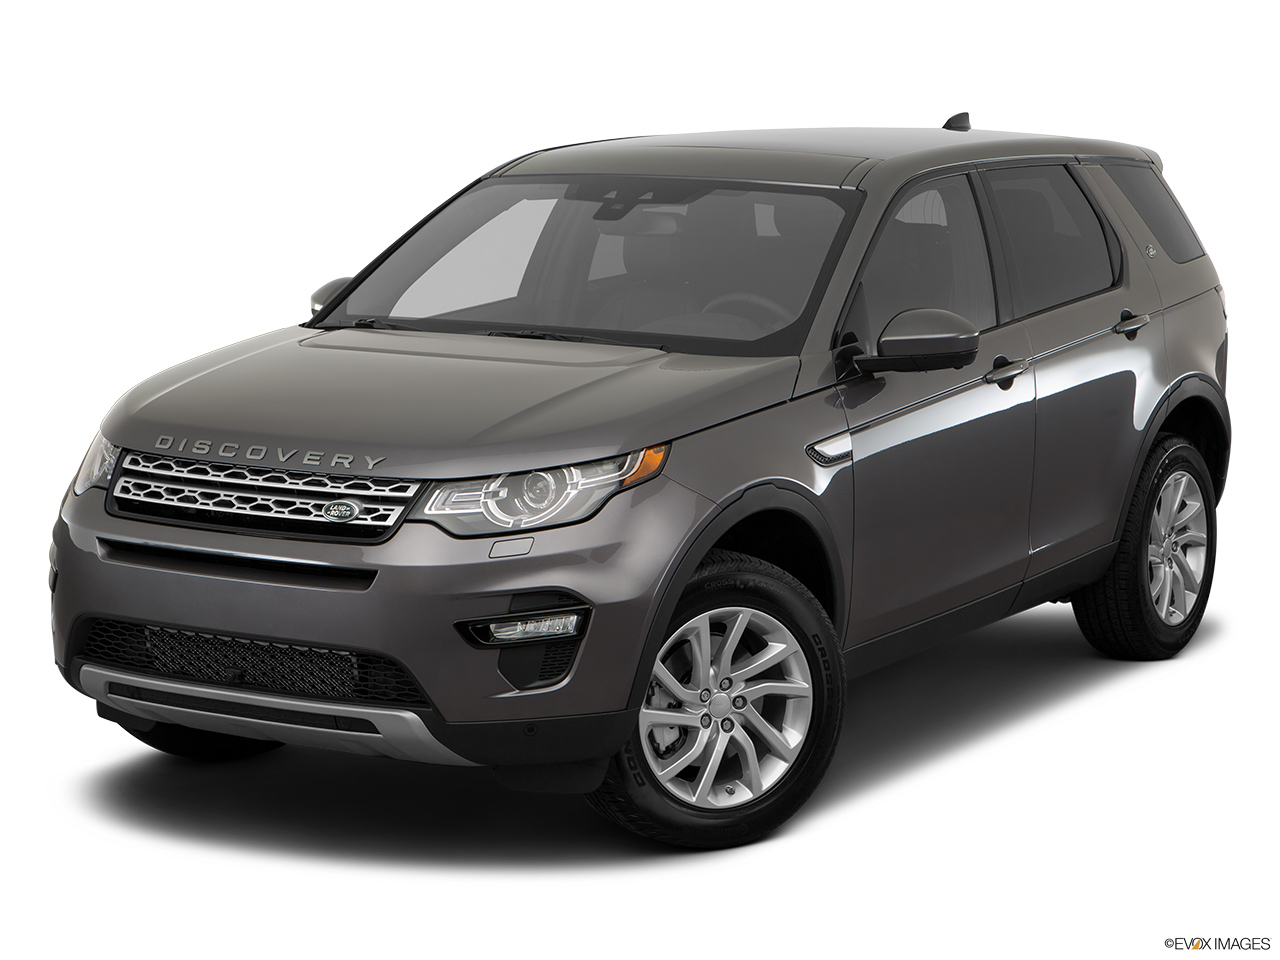 land rover discovery sport 2017 2 0l si4 se 4wd in egypt. Black Bedroom Furniture Sets. Home Design Ideas